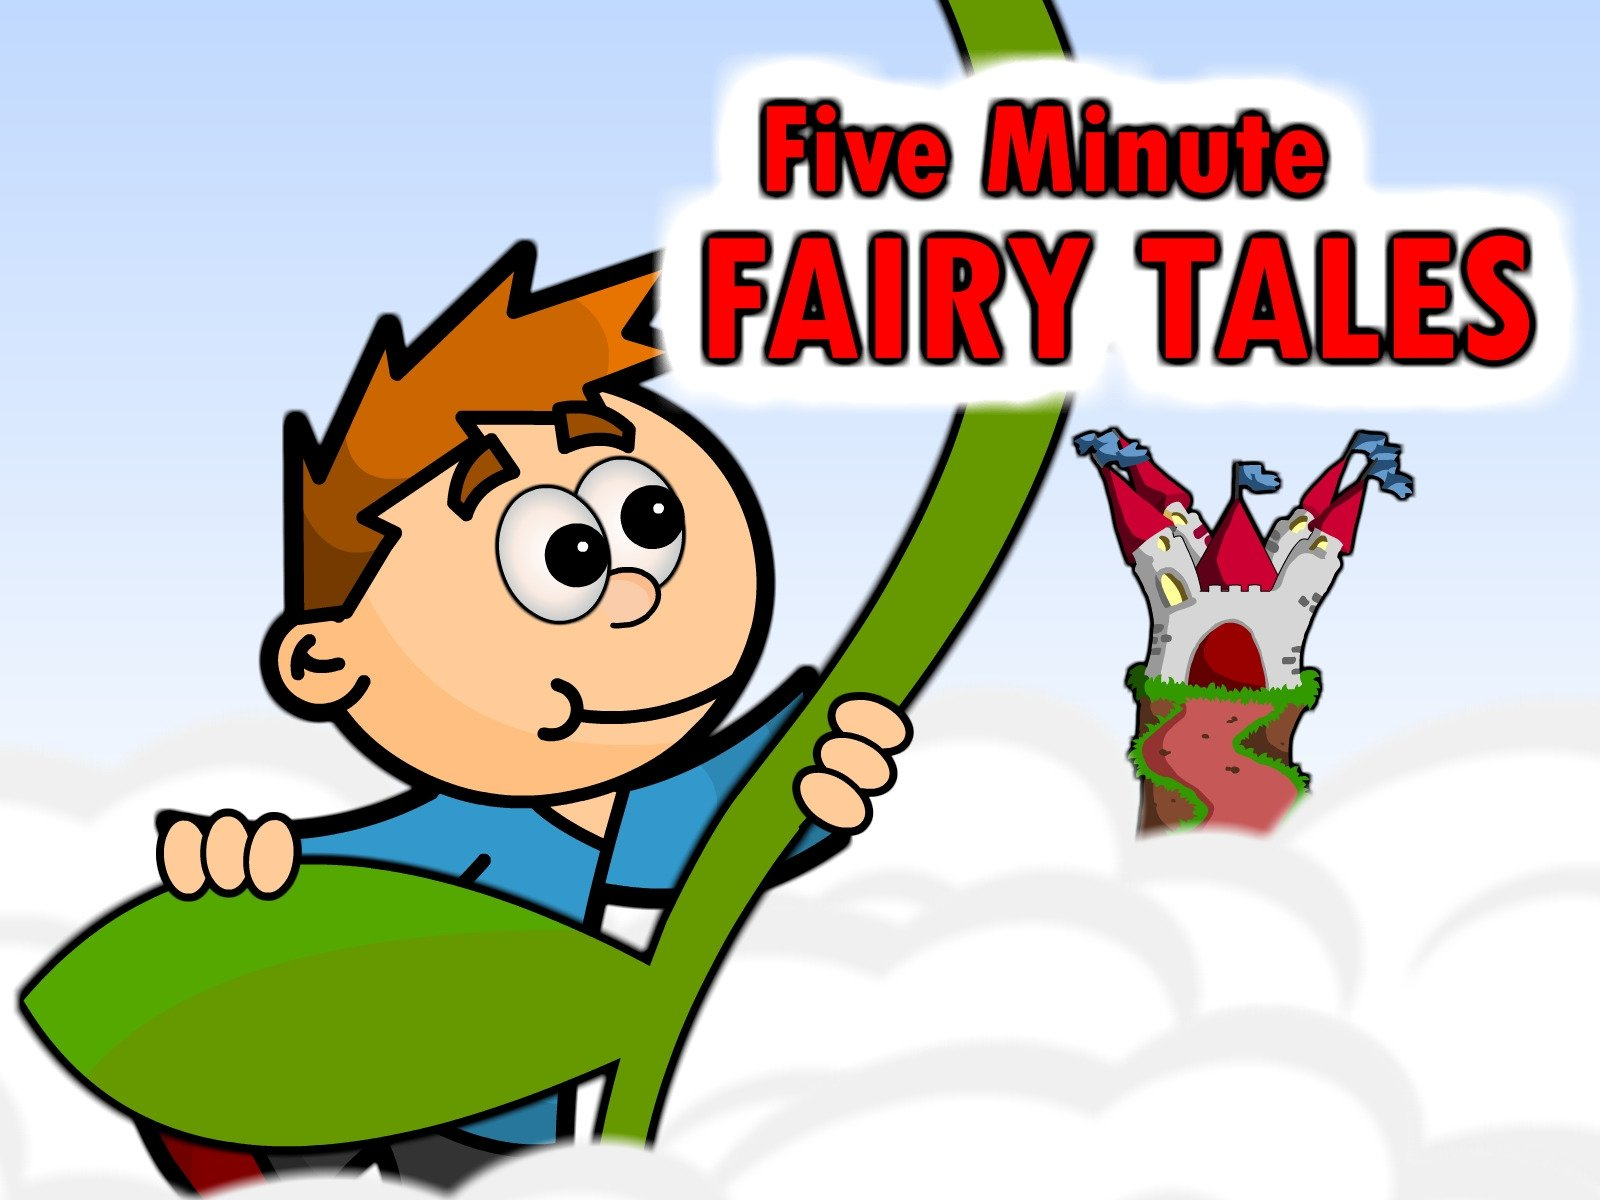 Amazon co uk: Watch Five Minute Fairy Tales | Prime Video